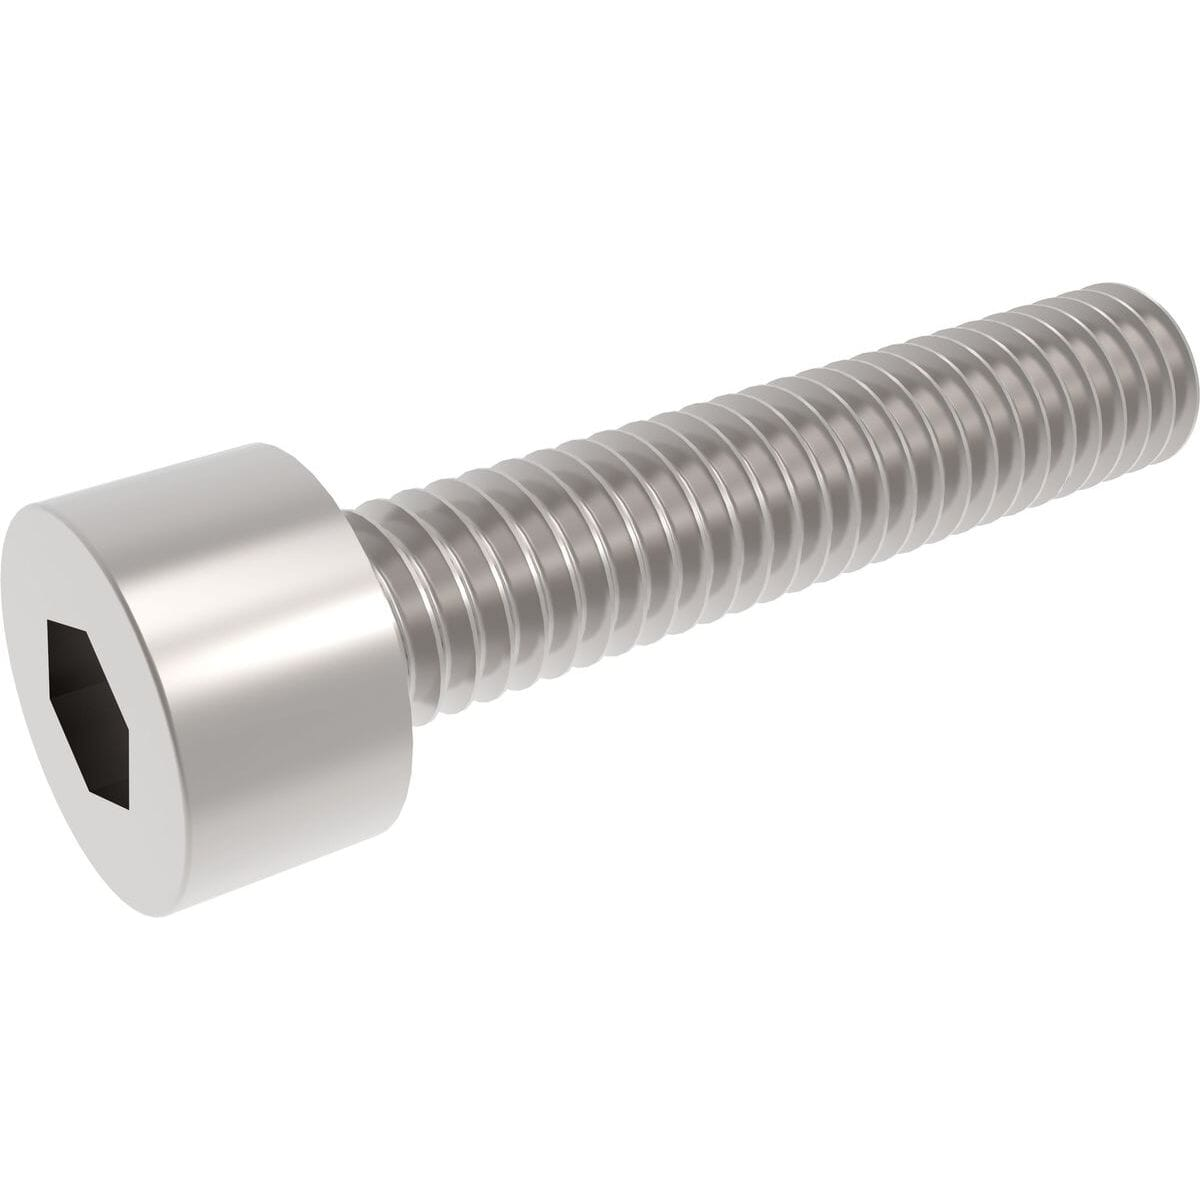 M8 x 10mm Full Thread Cap Head Screws (DIN 912) - Stainless Steel (A2)